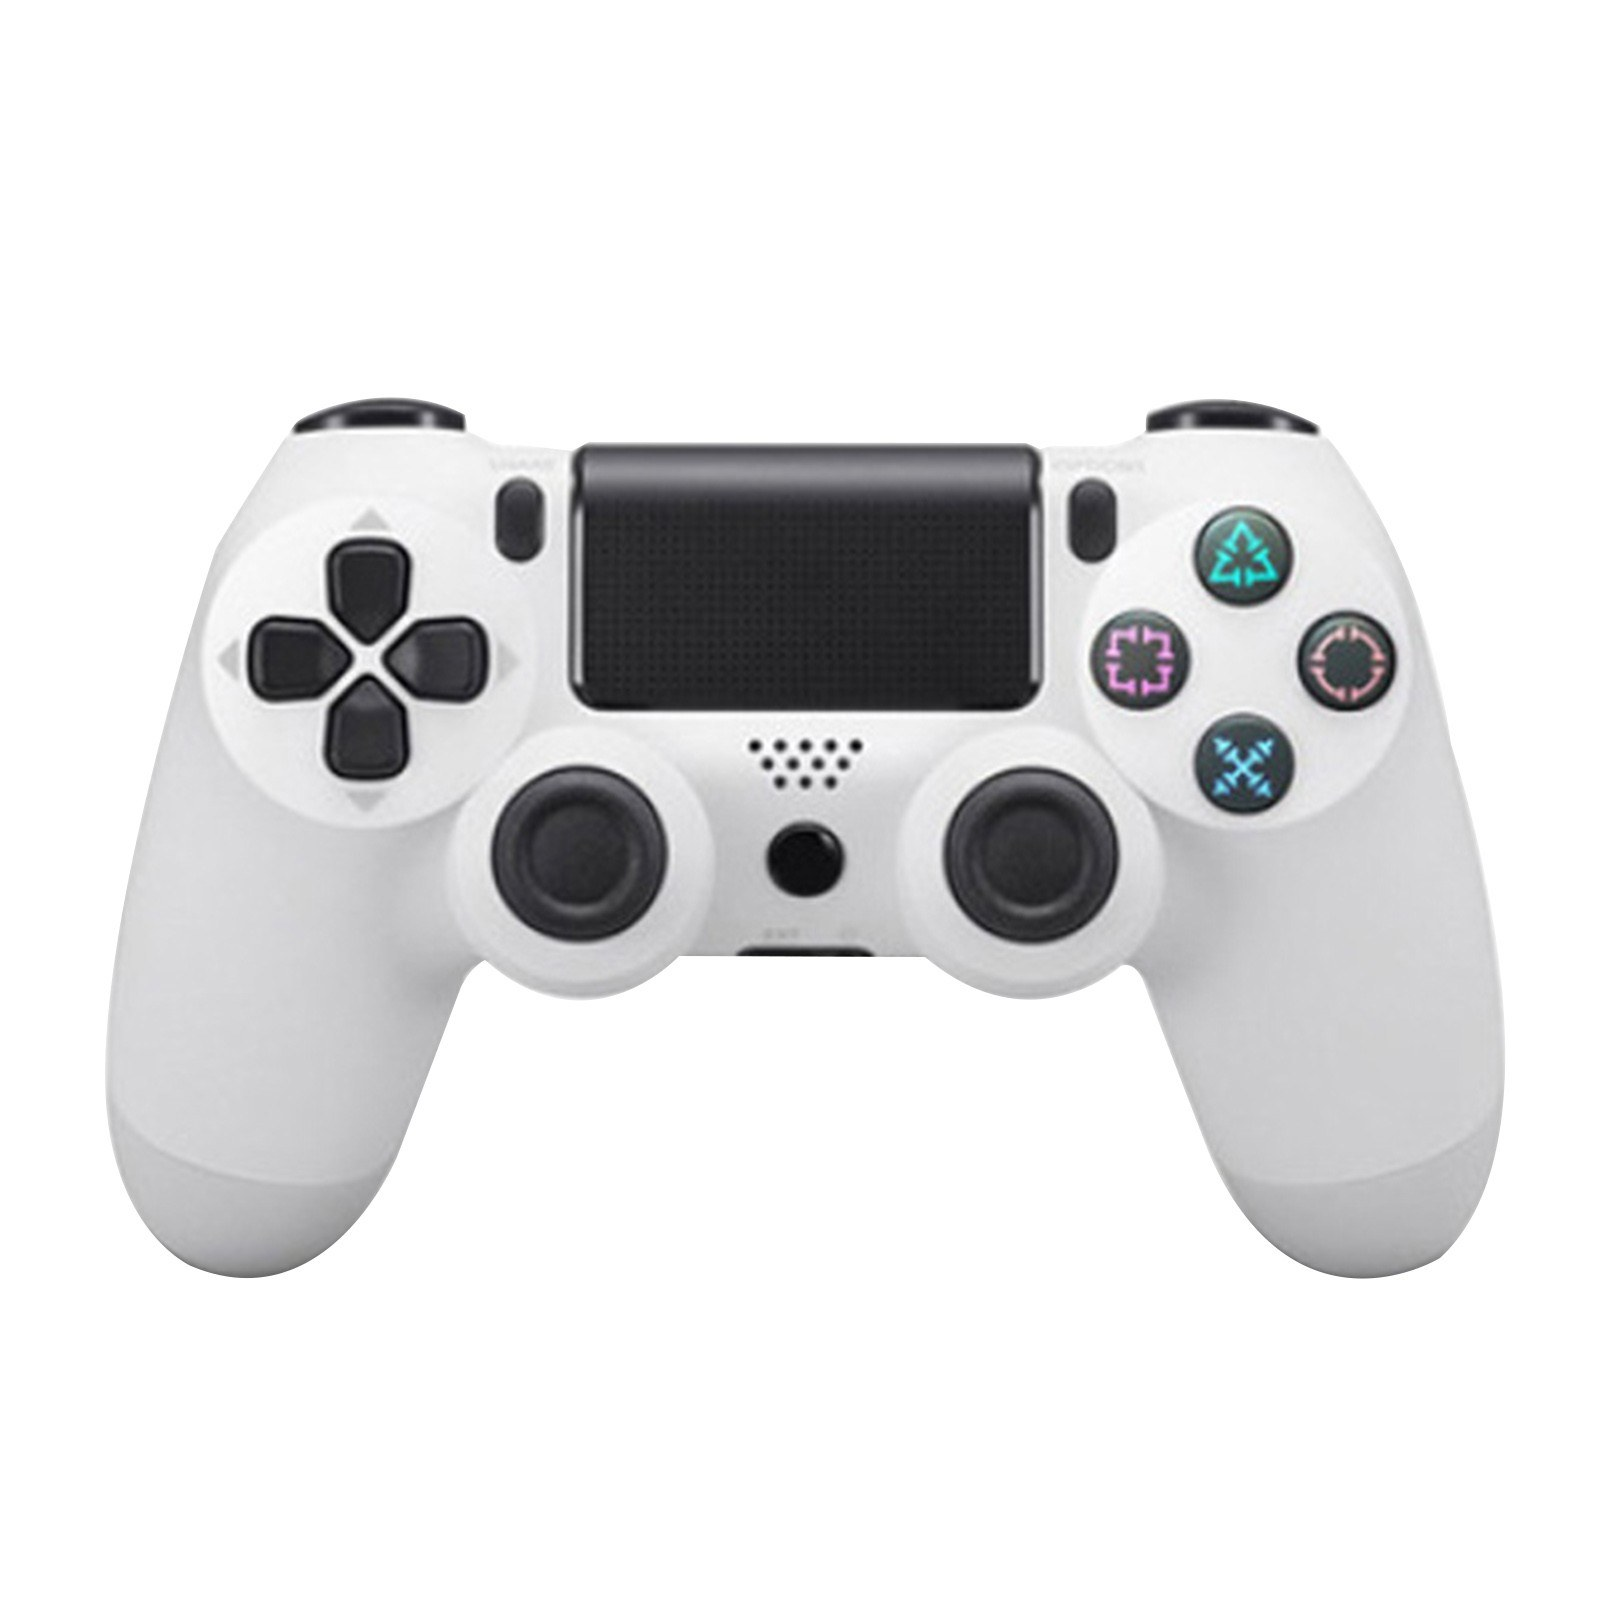 Tomtop - 31% OFF P4 BT Game Handle USB Wirelessly Rechargeable Gaming Controller, Free Shipping $23.99